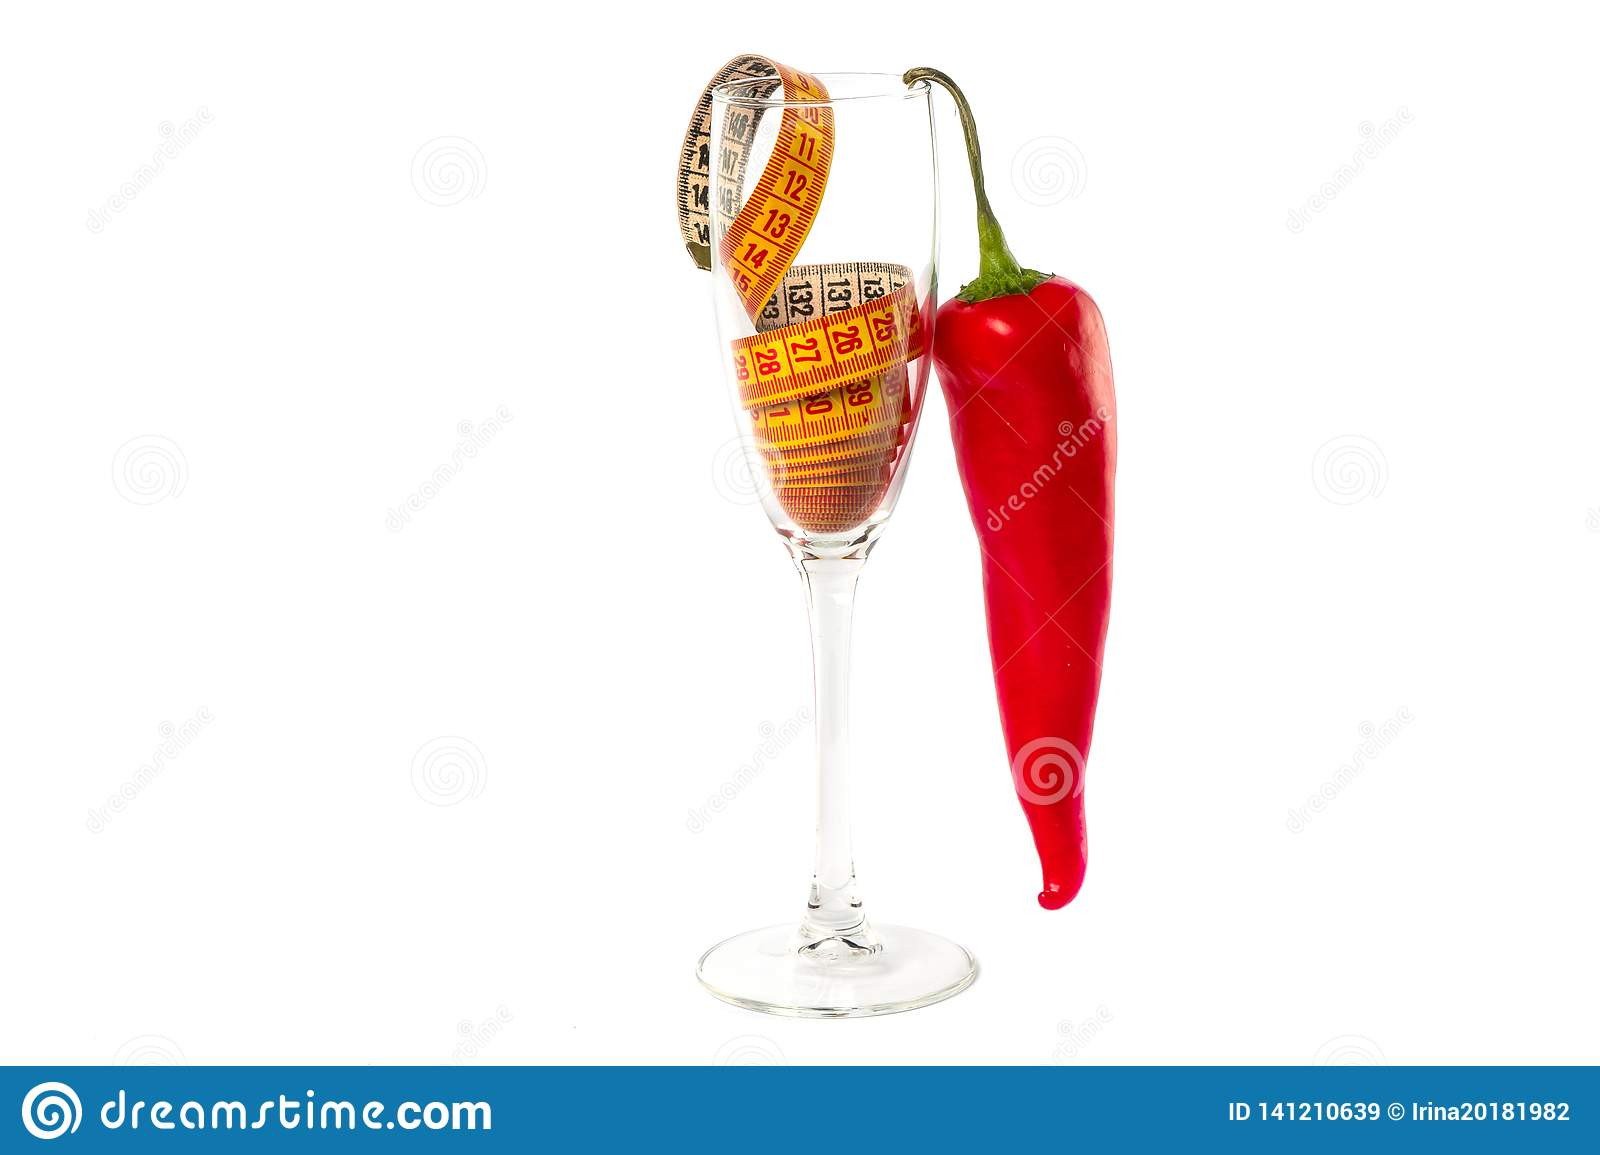 Beautiful glass concept photography diet